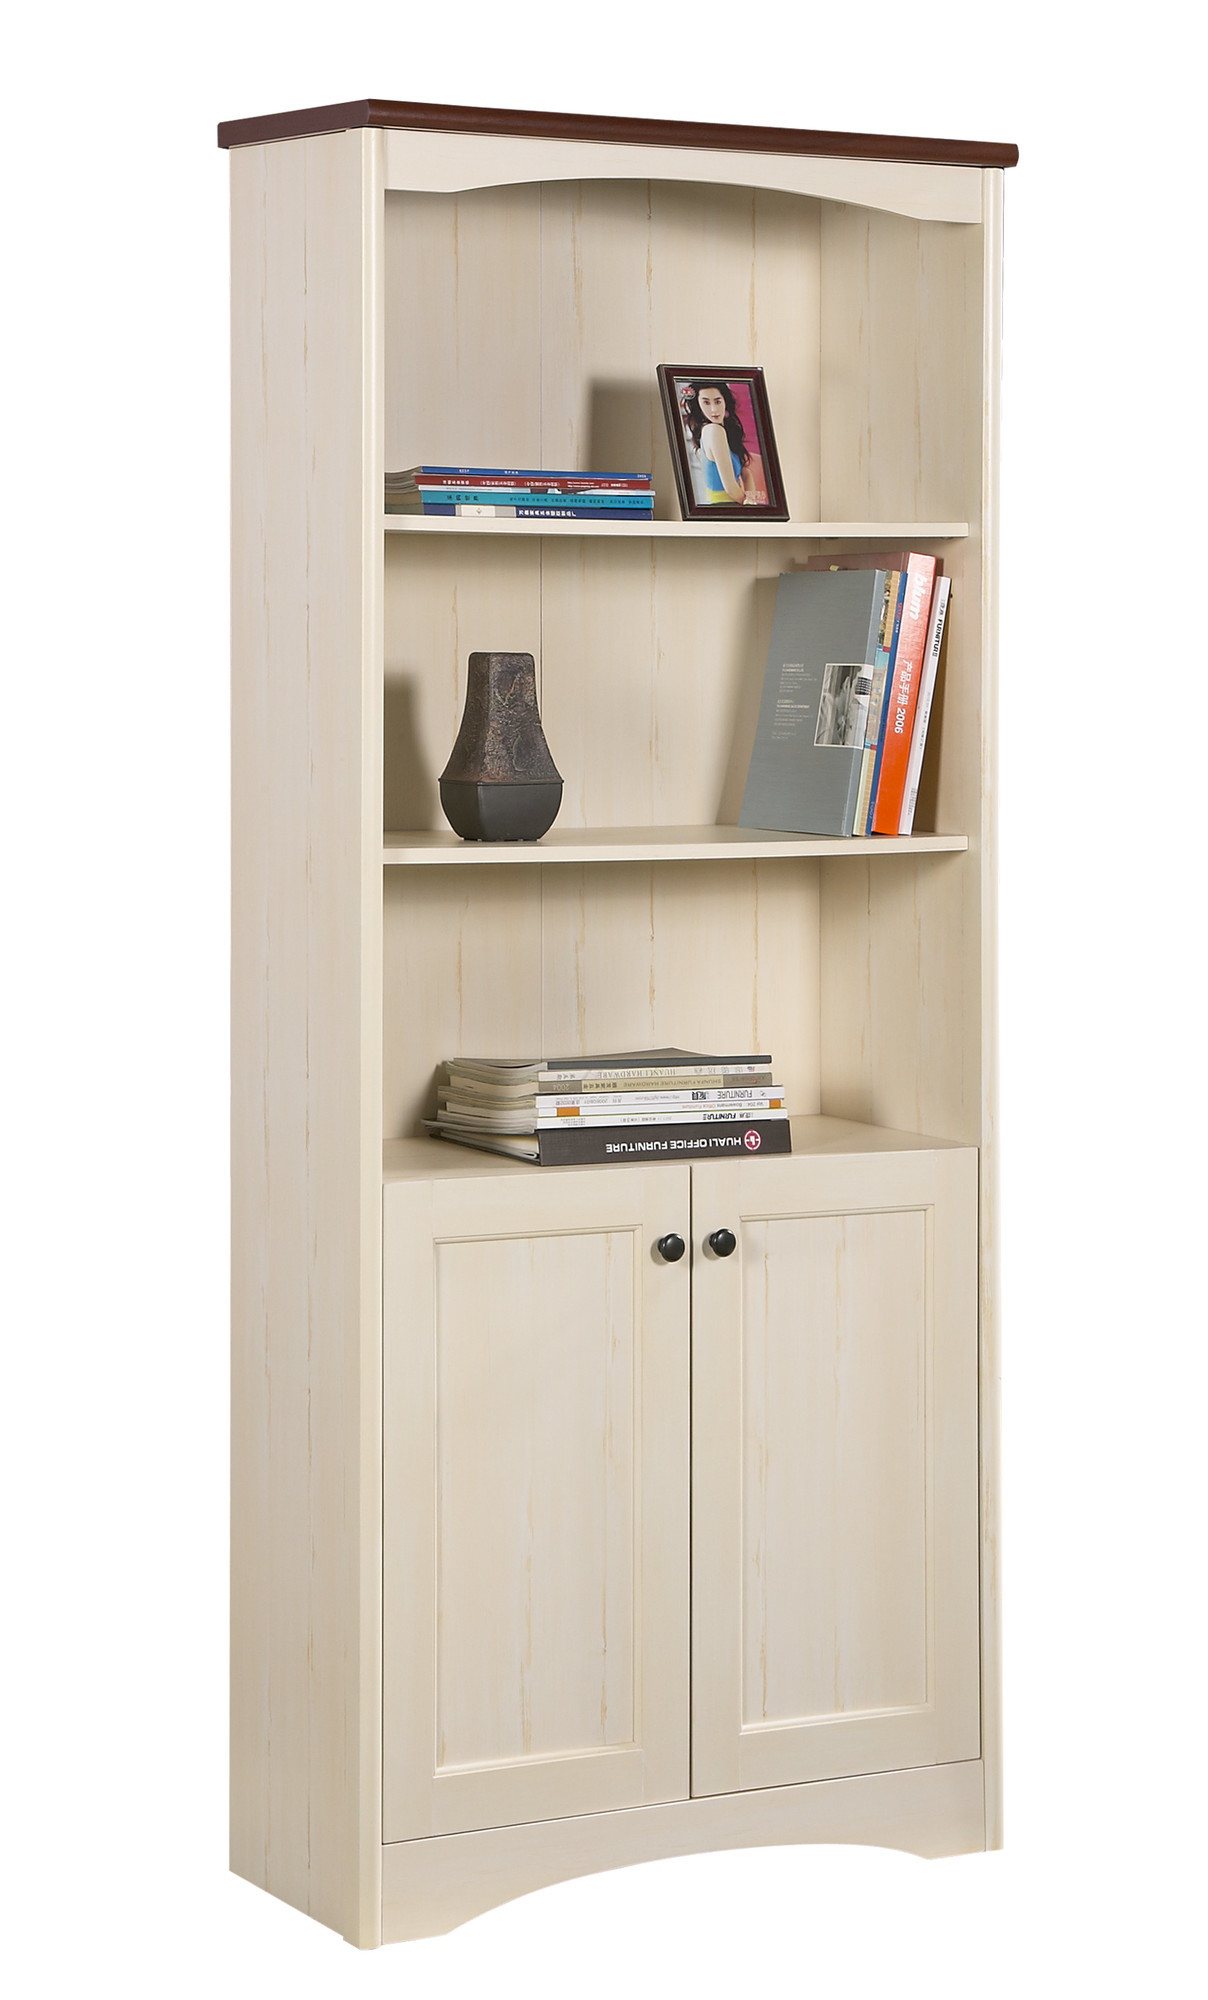 furniture lighting and bunching with hooker item doors products door number touch telluride bookcase